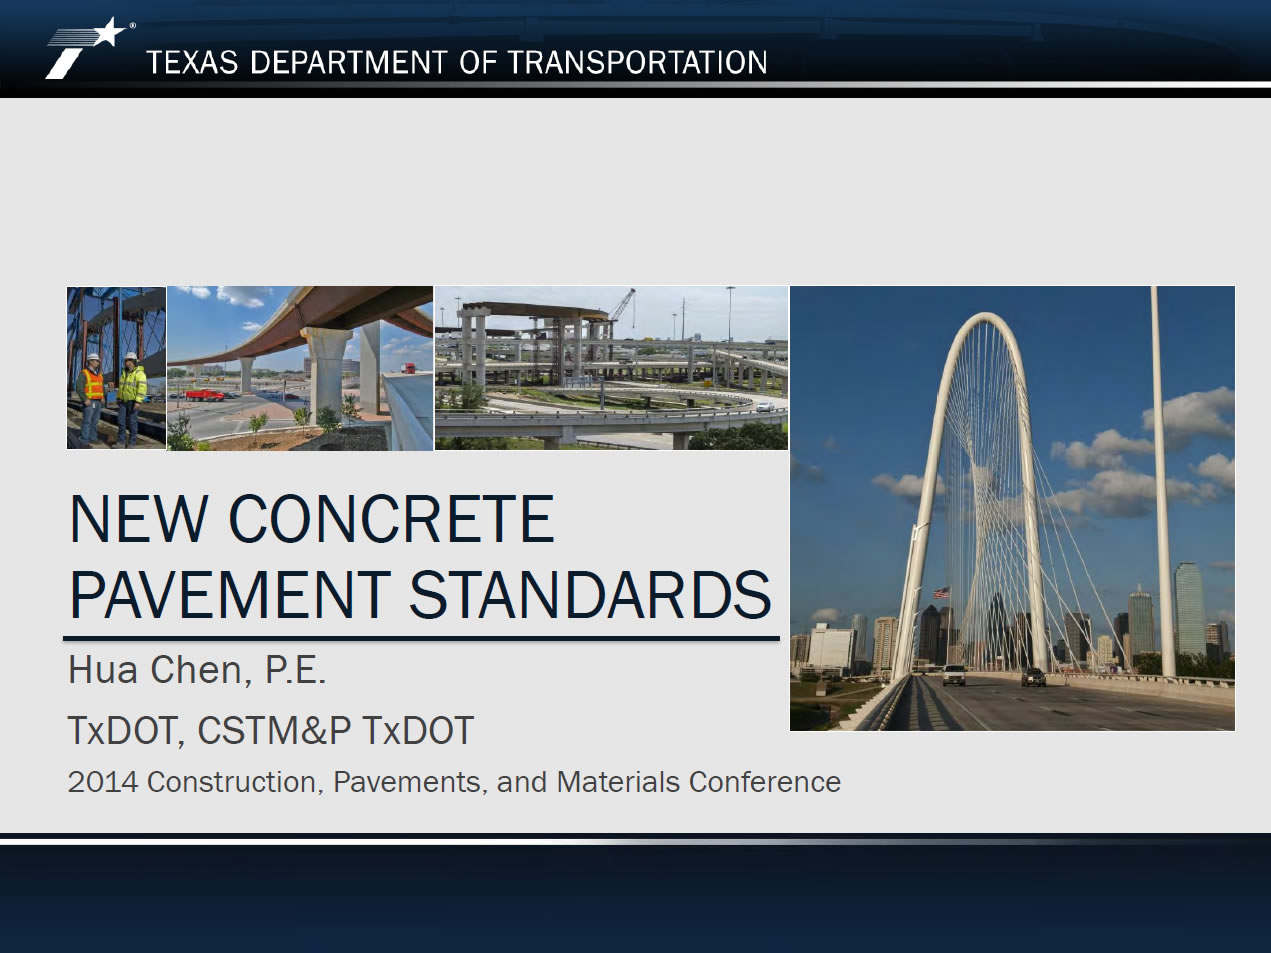 New Concrete Pavement Standards